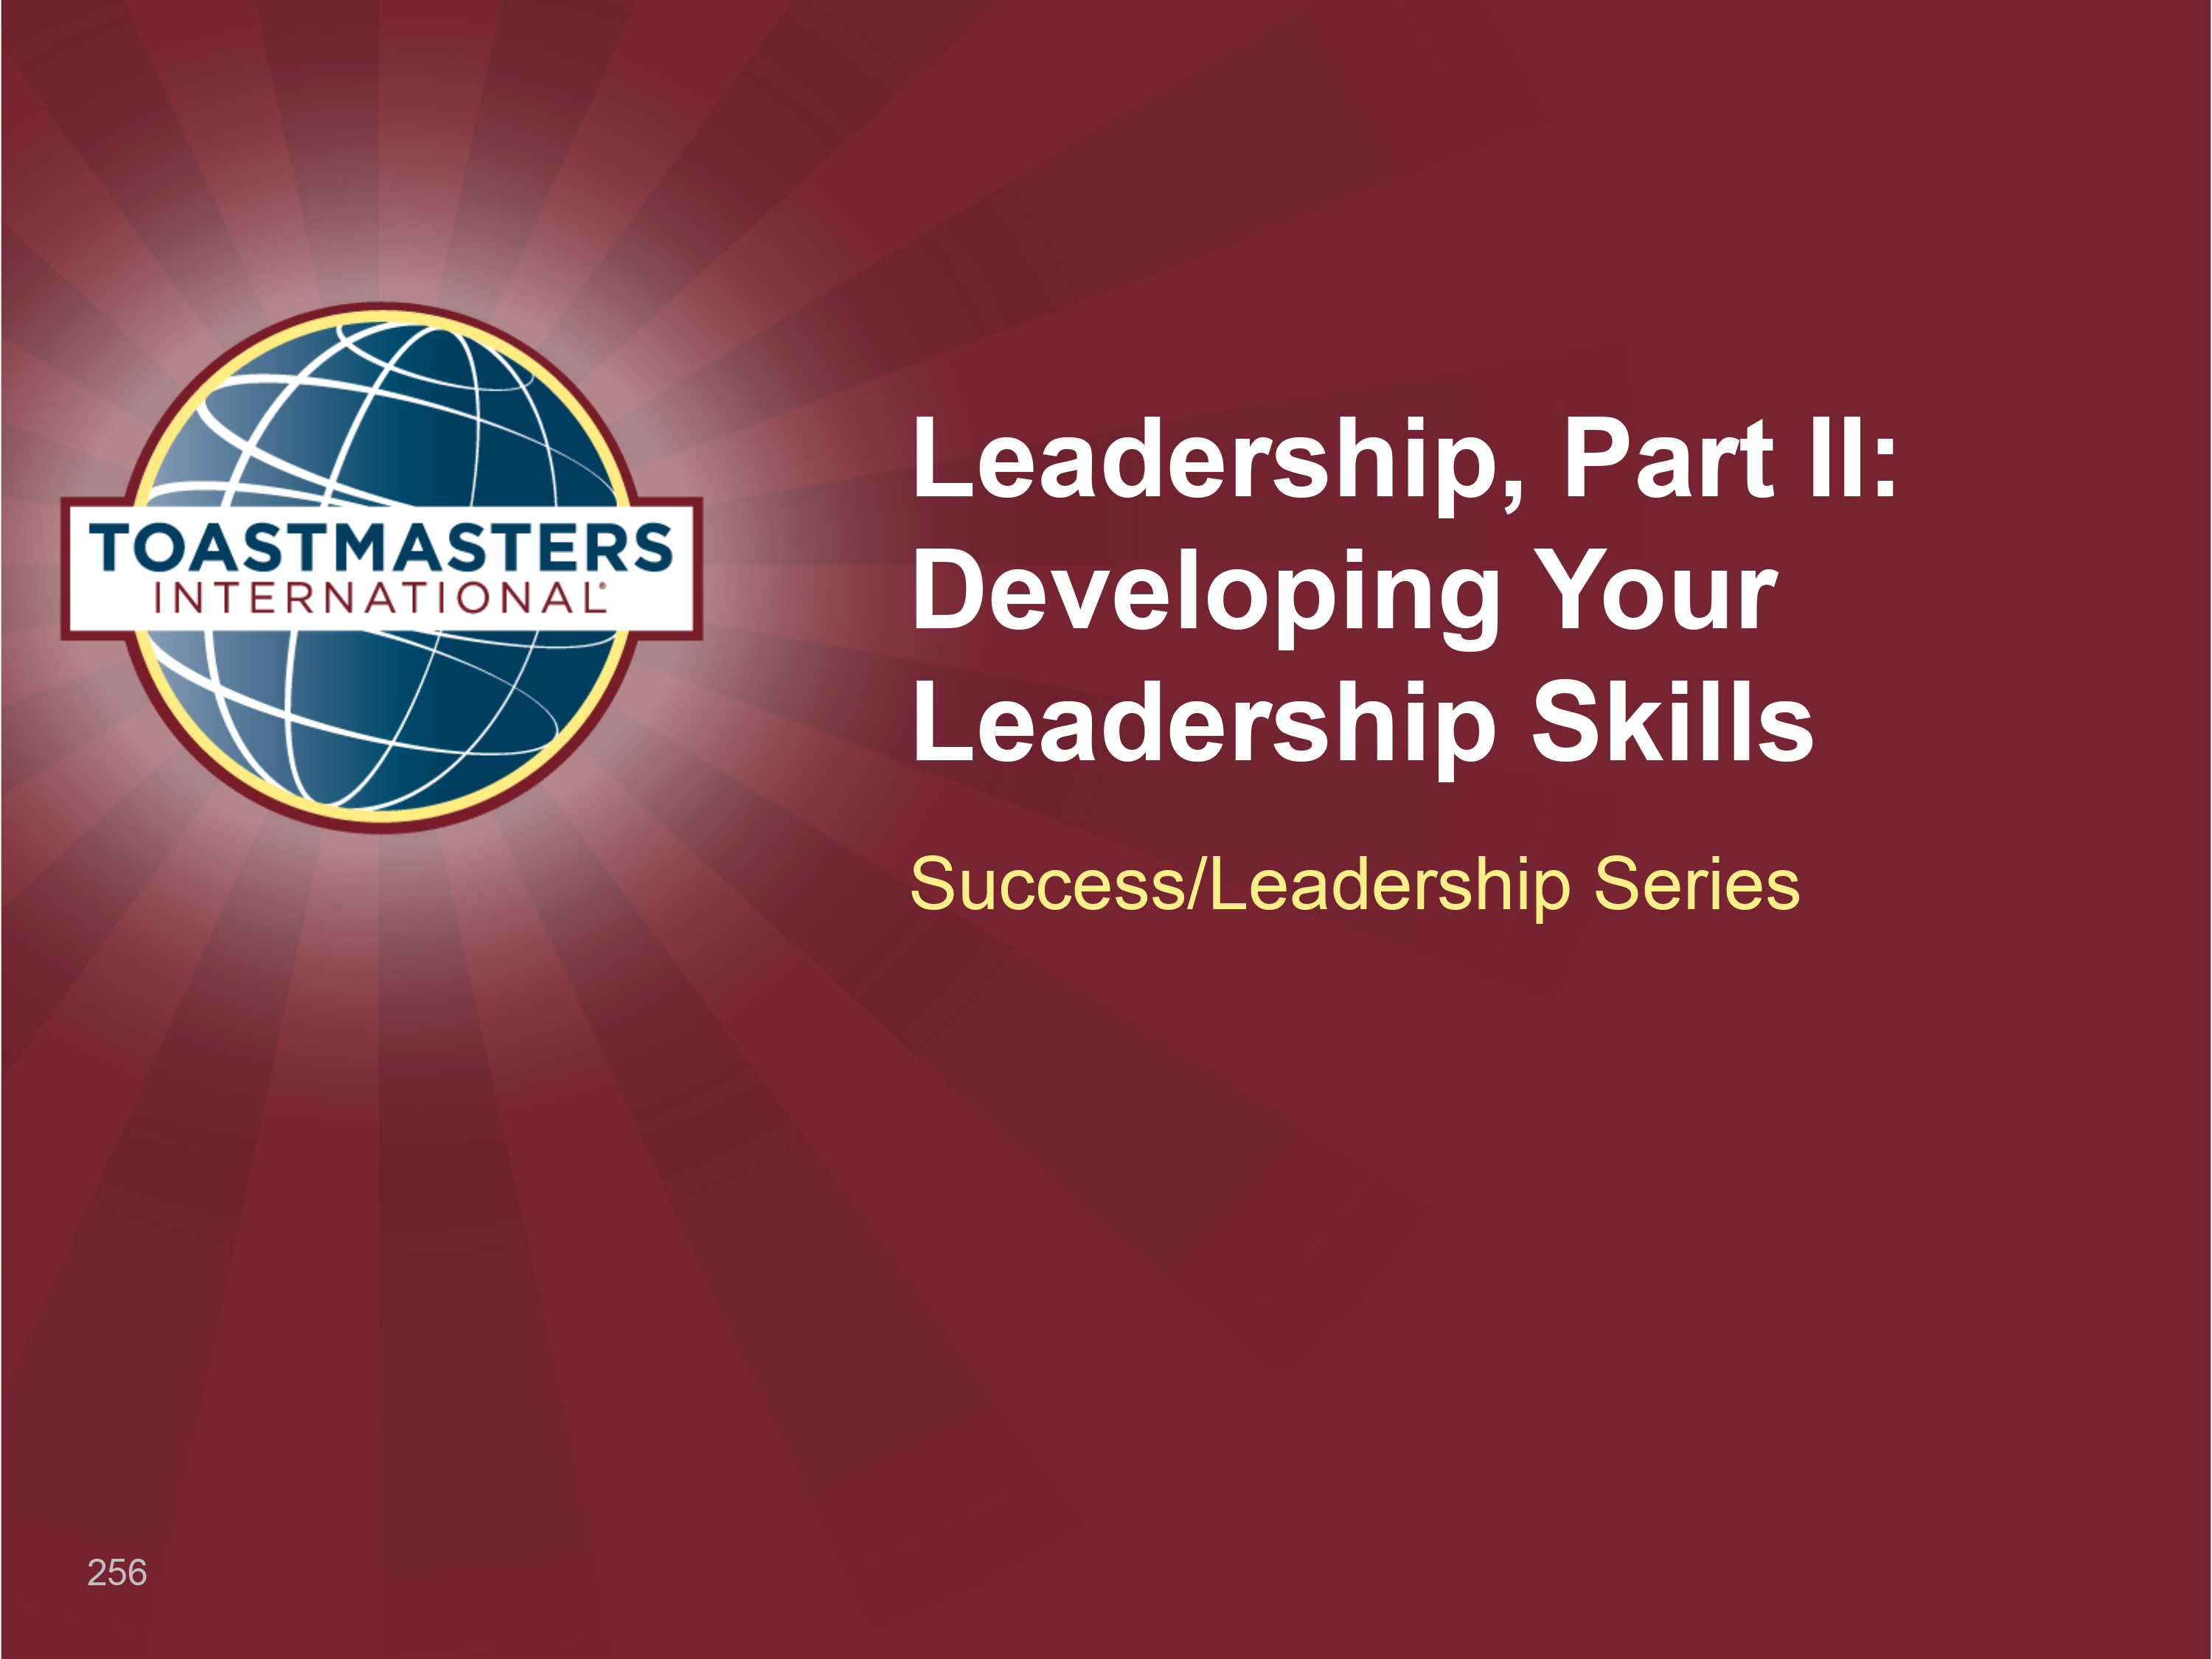 Leadership, Part II: Developing Your Leadership Skills (PPT)